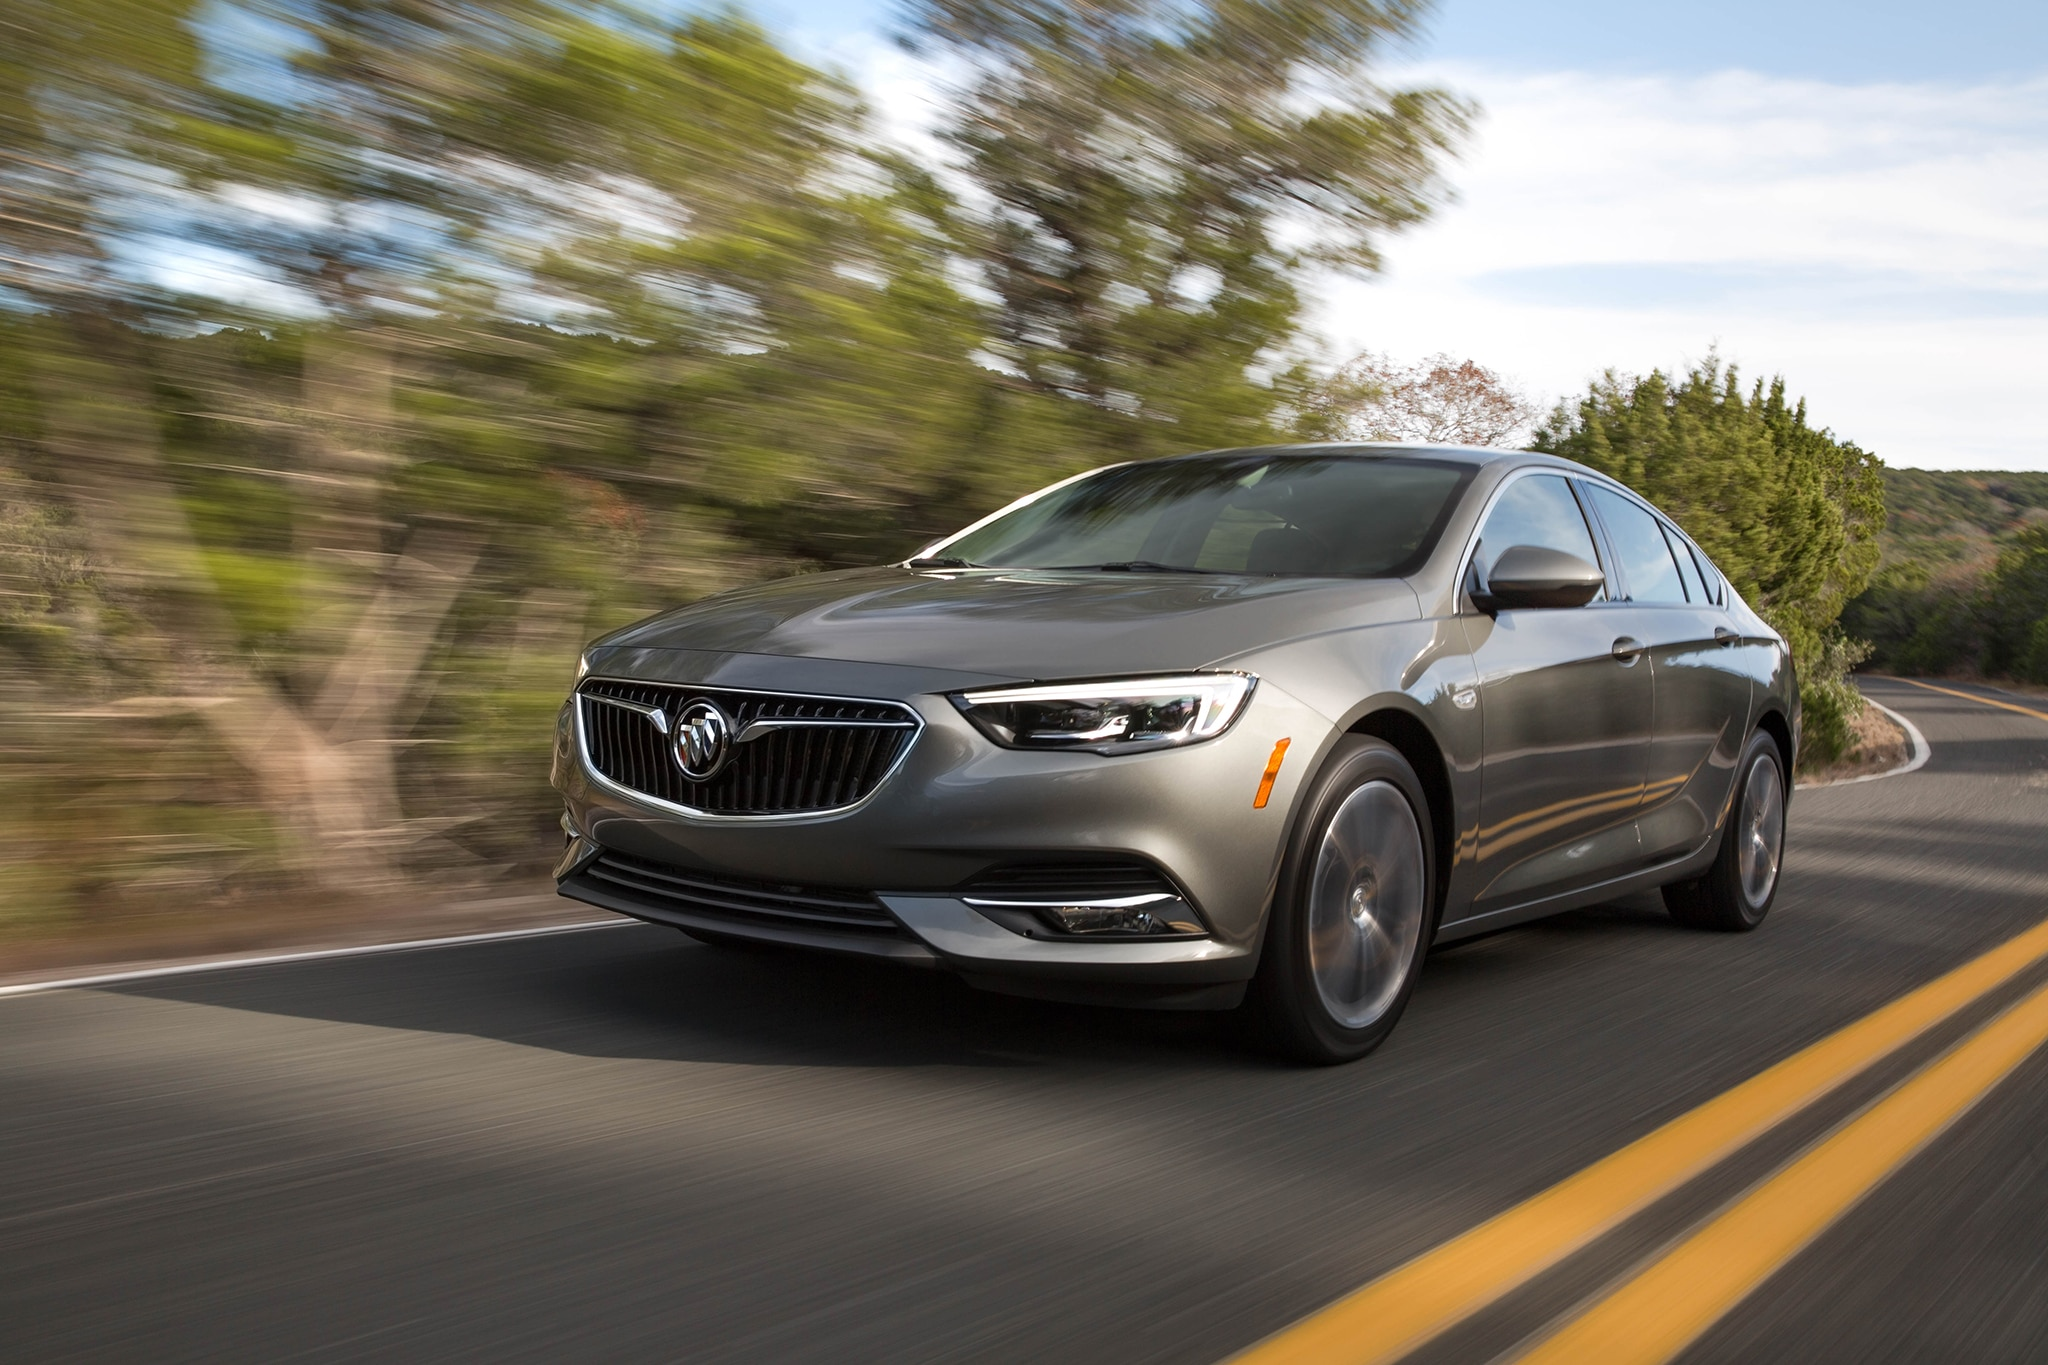 2018 Buick Regal Sportback First Drive Review